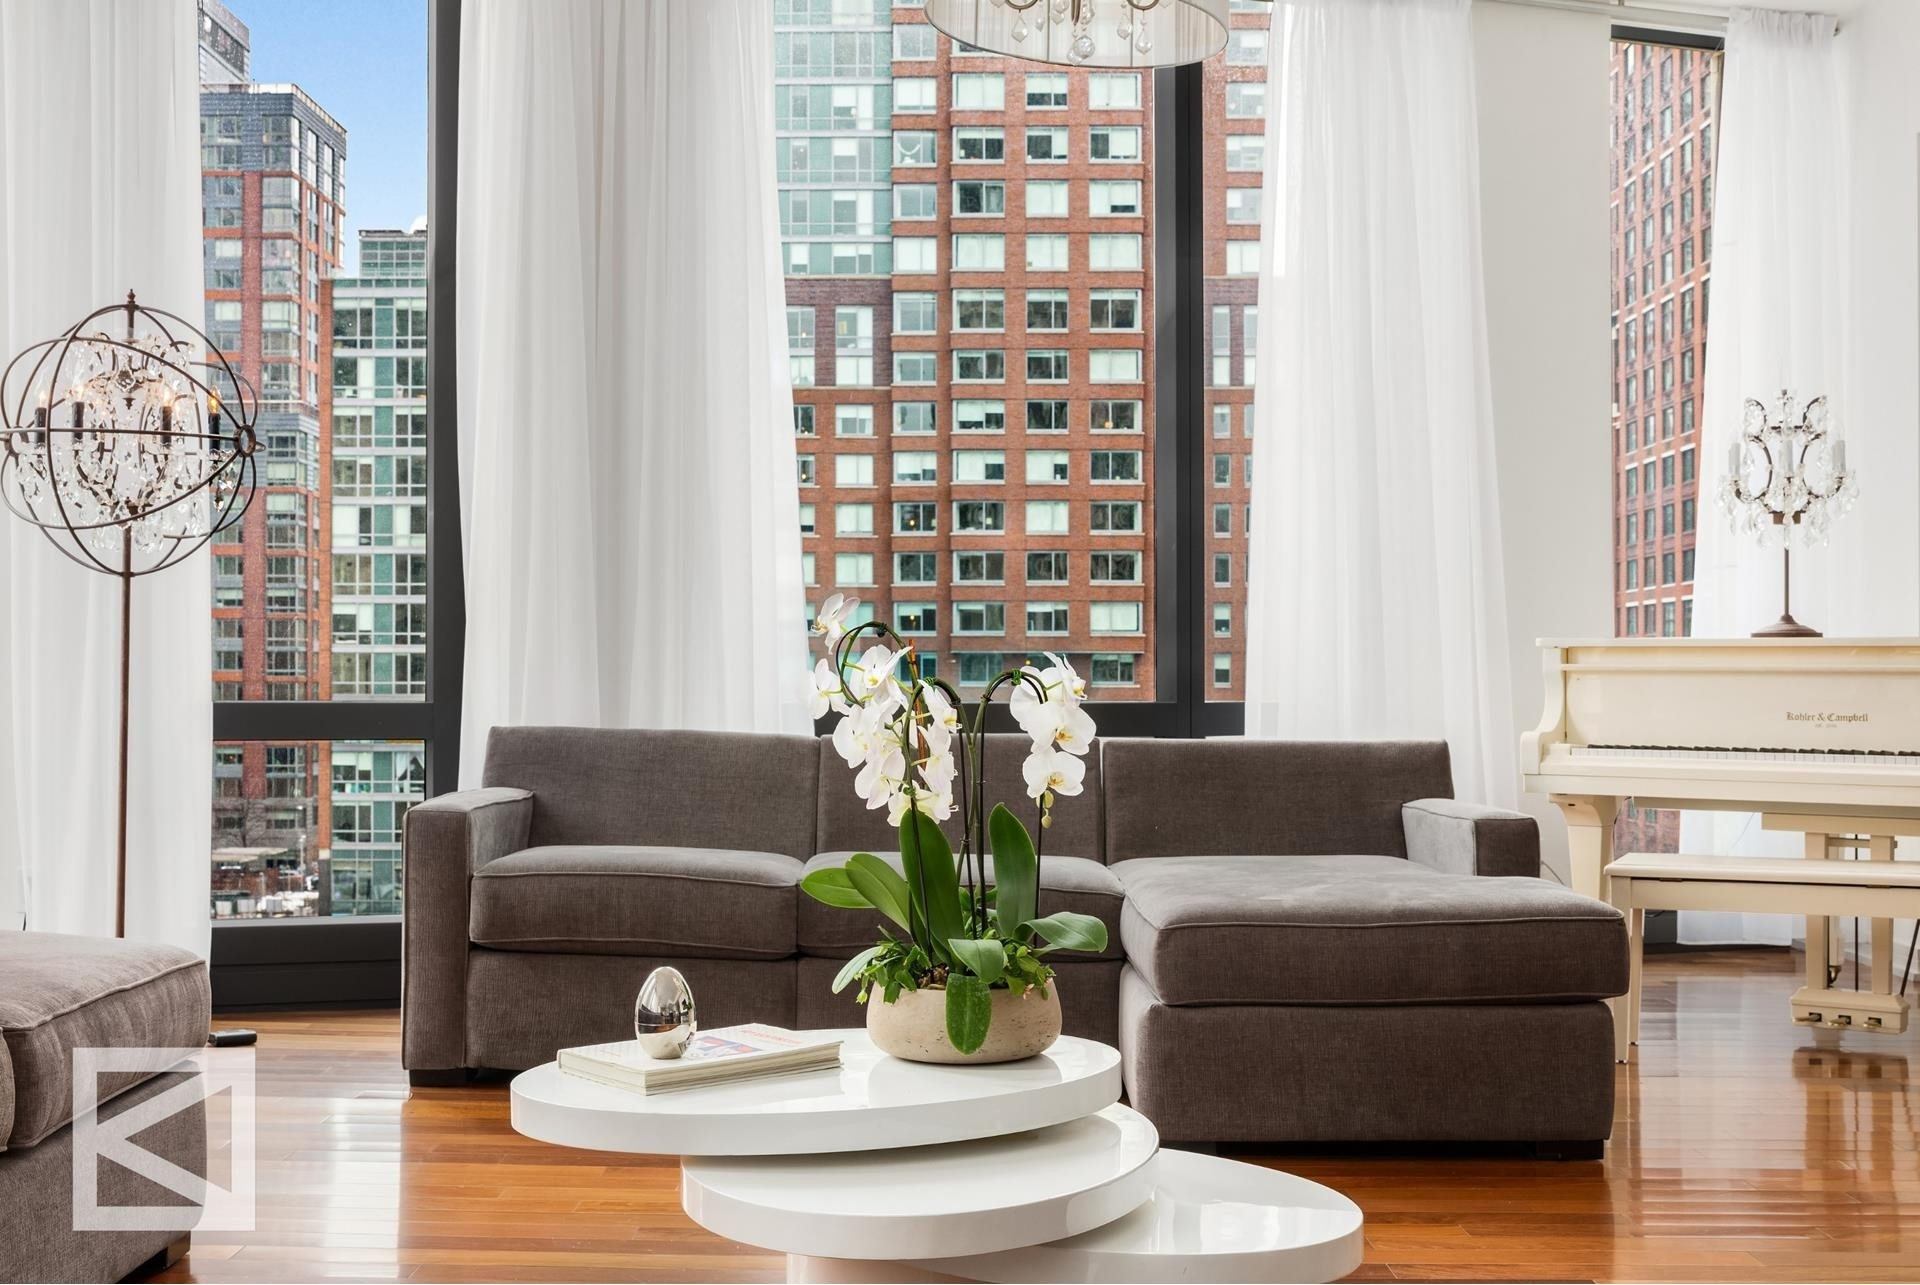 5. Condominiums for Sale at 101 WARREN ST , 610/620 TriBeCa, New York, NY 10007